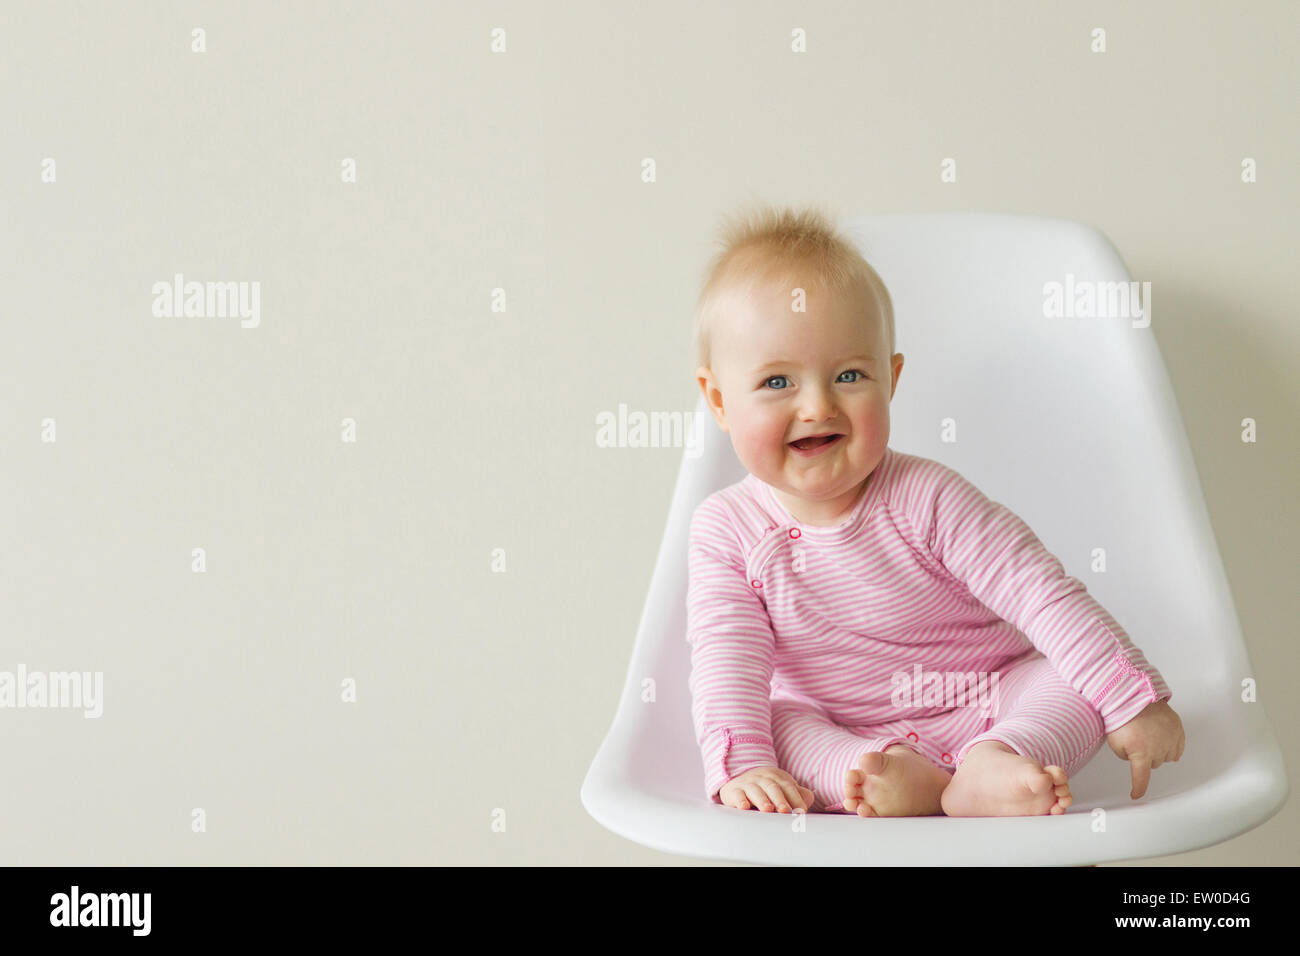 baby girl sitting on white eames chair Stock Photo